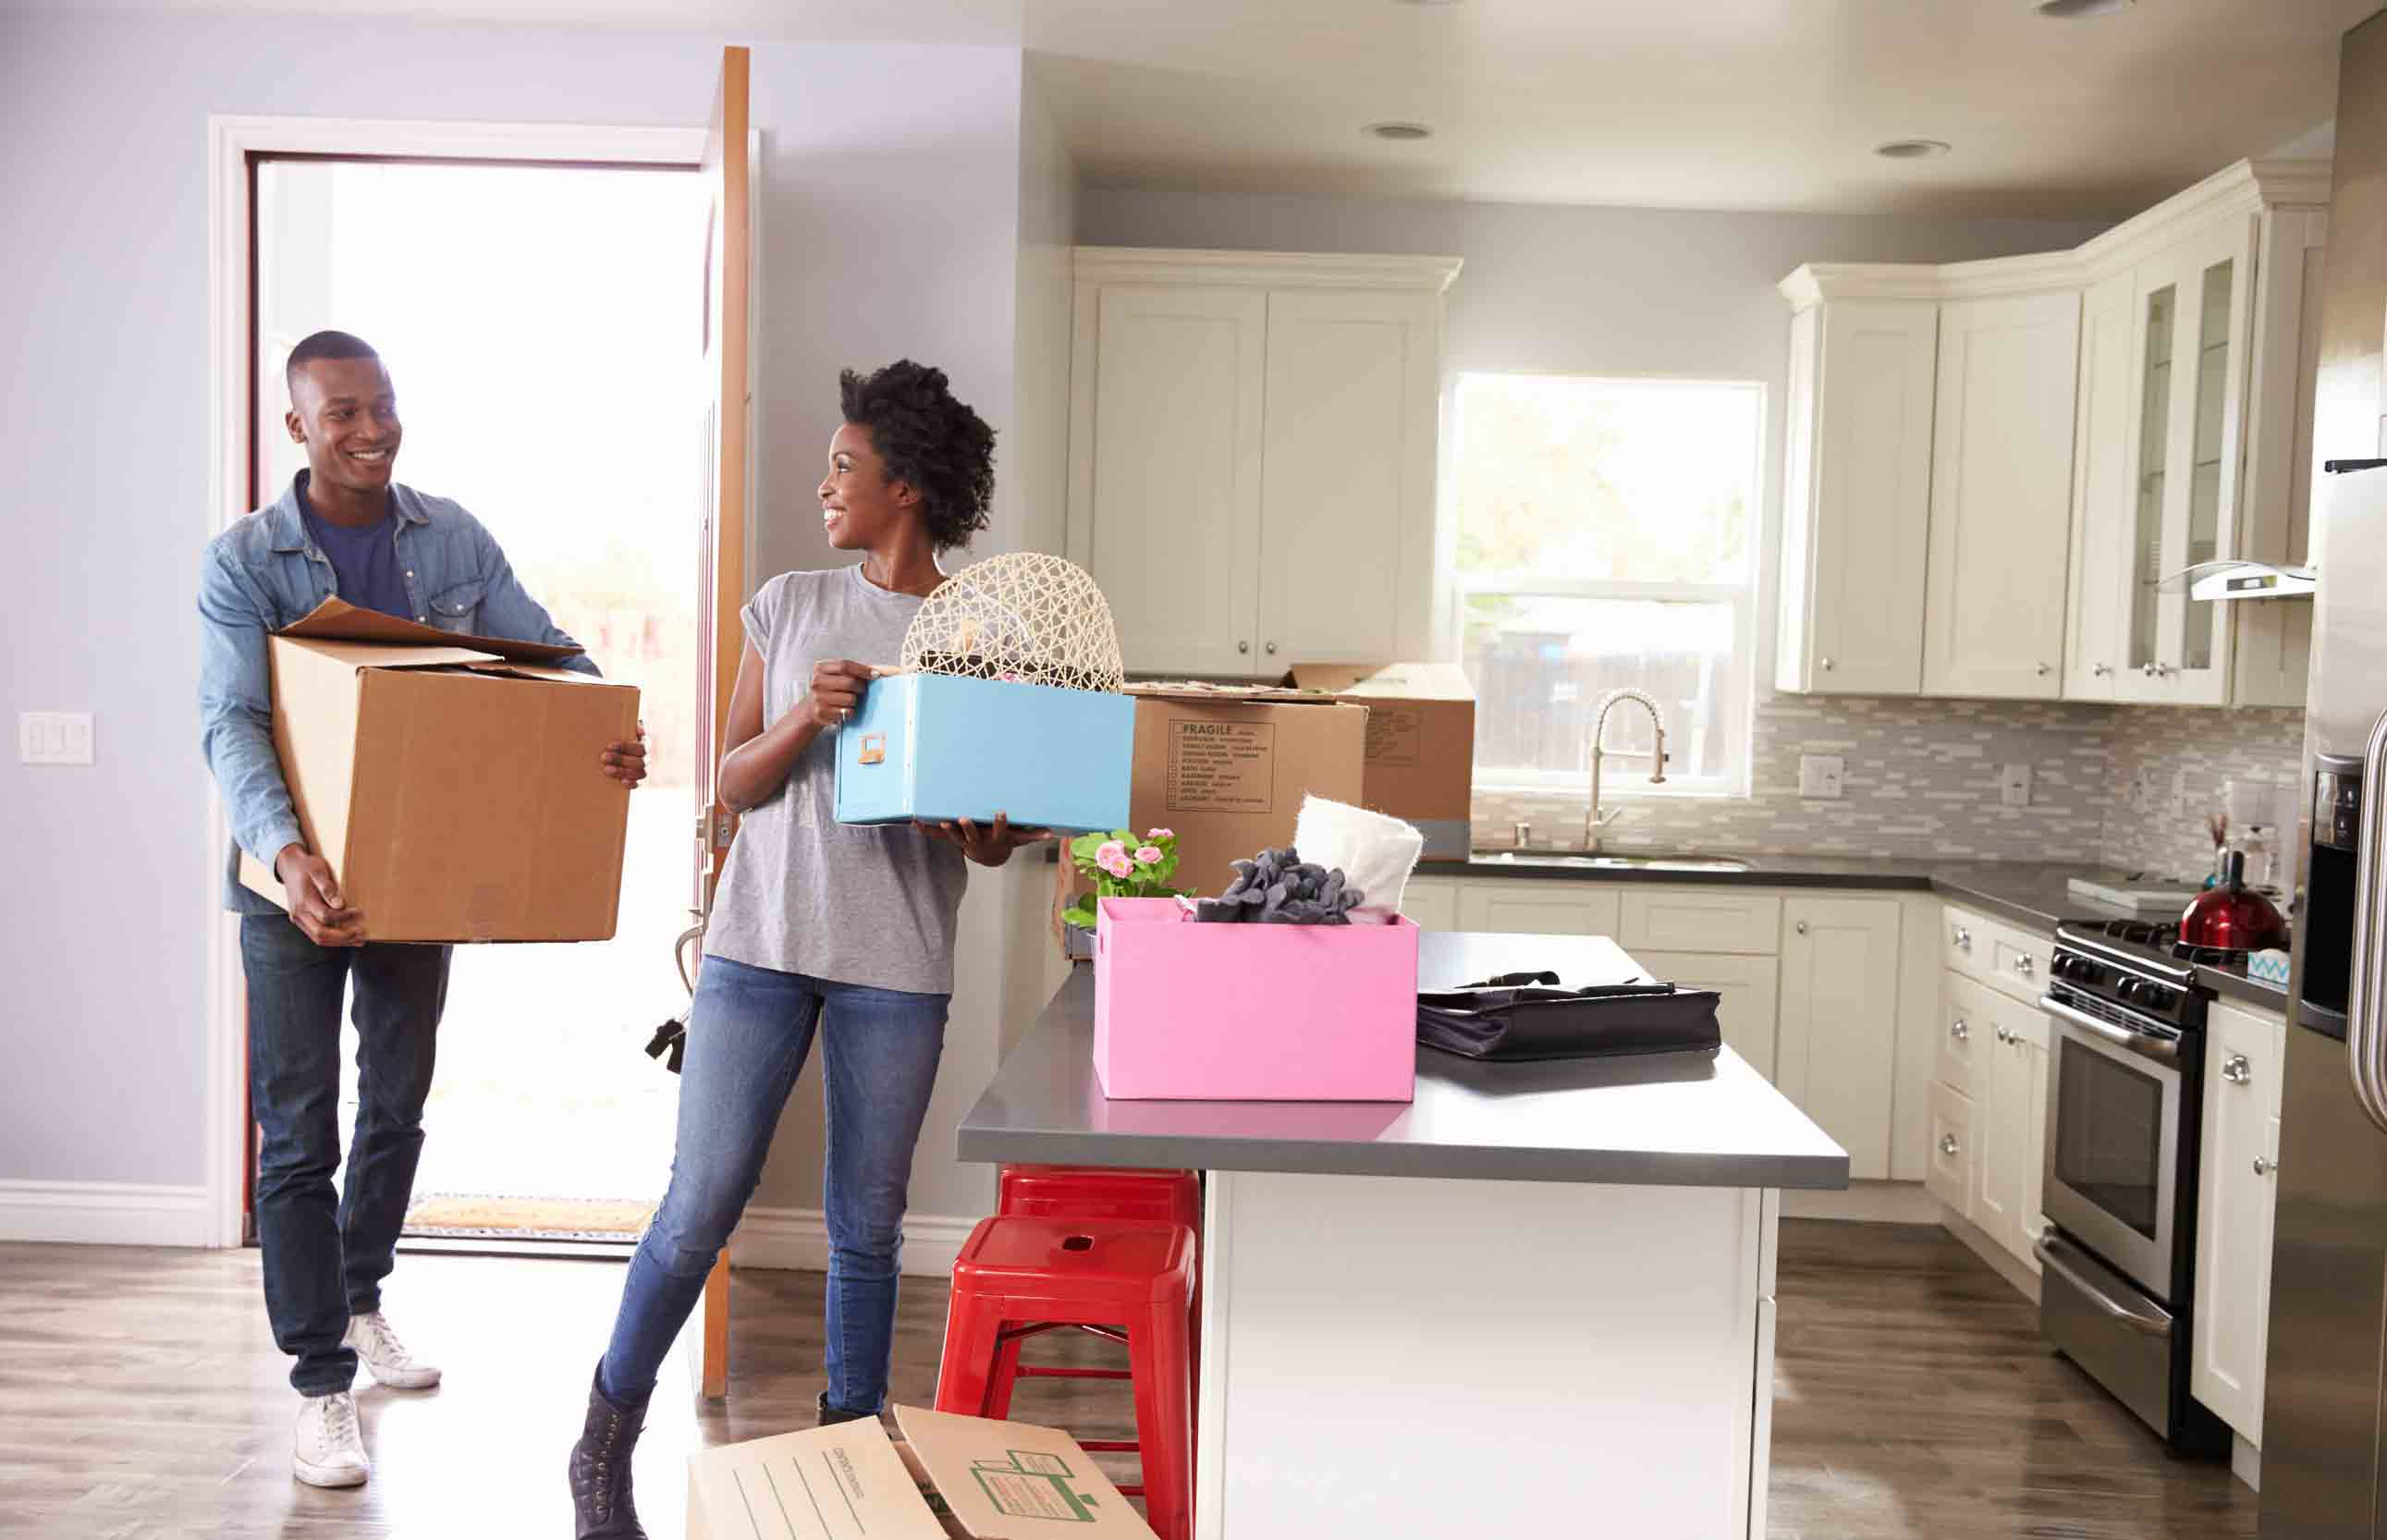 There are a few ways to expedite that down payment.